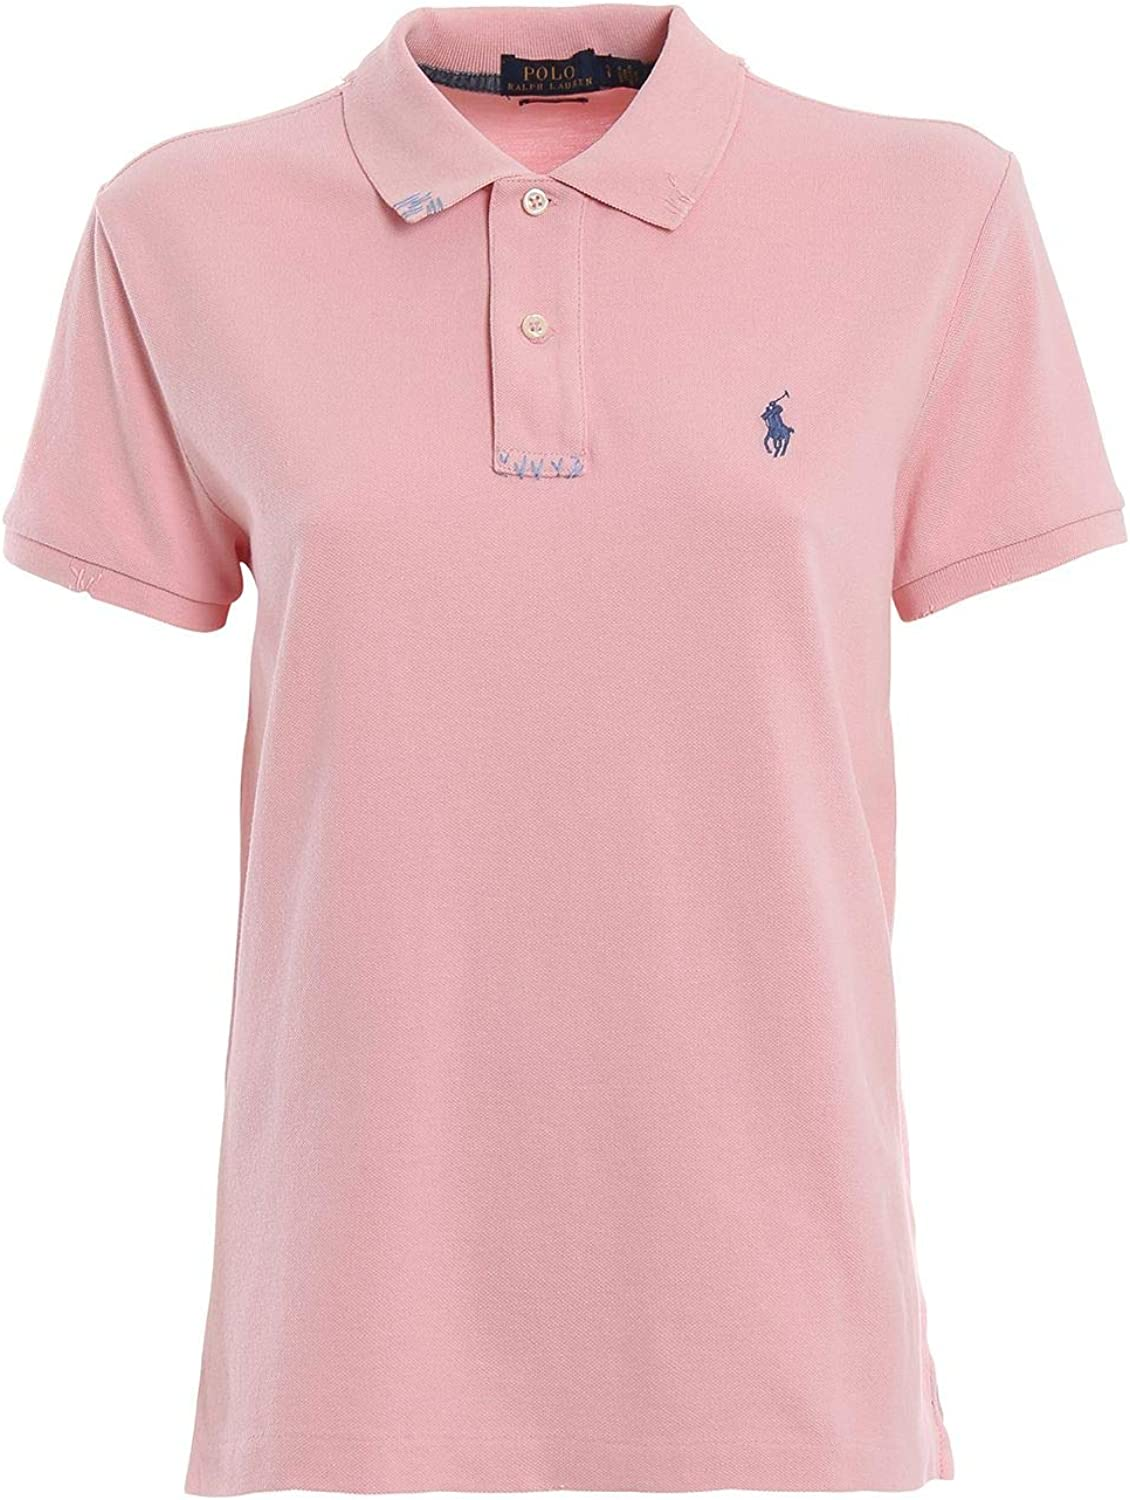 Ralph Lauren Luxury Fashion Mujer 211744518002 Rosa Polo ...